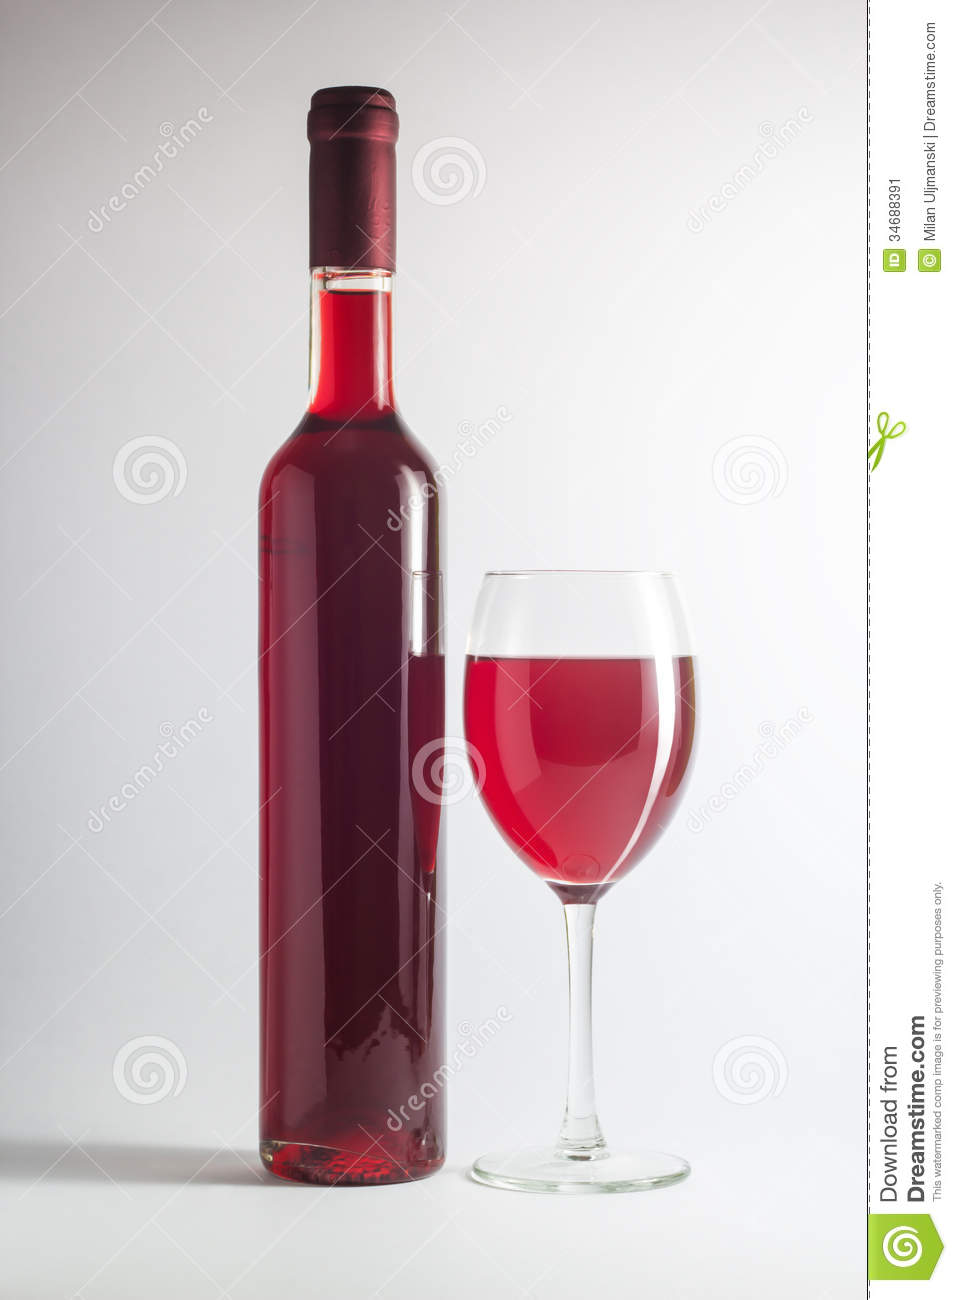 Red wine bottle and a glass stock image image 34688391 for Wine bottle glass